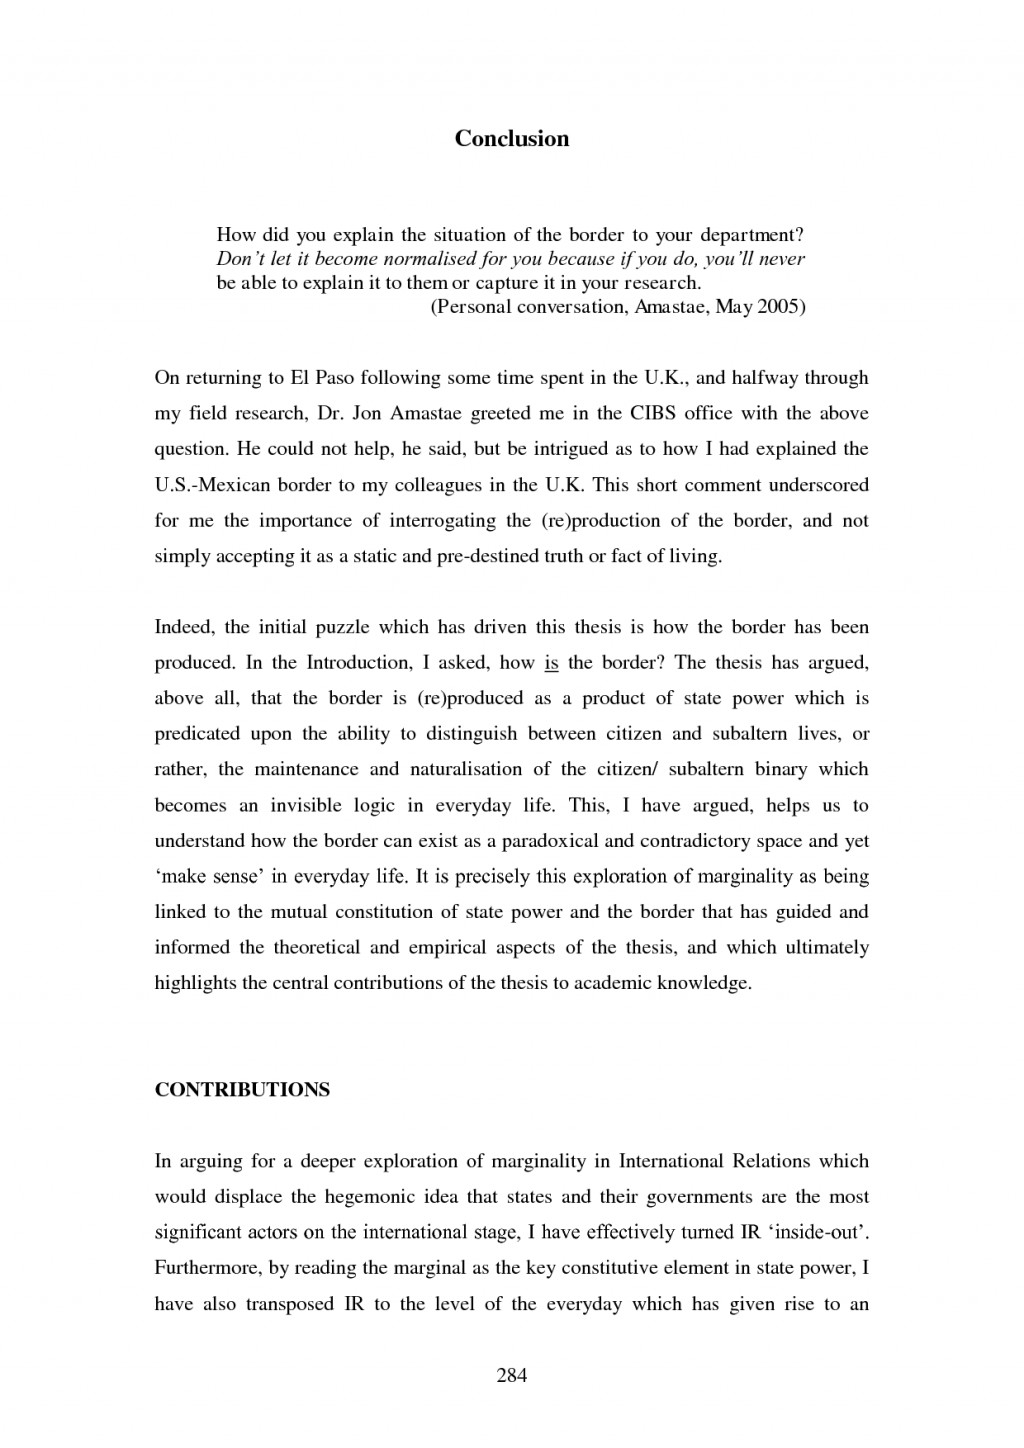 002 Wa6hdq3tia How To Write Conclusion For Research Paper Amazing A Pdf Large